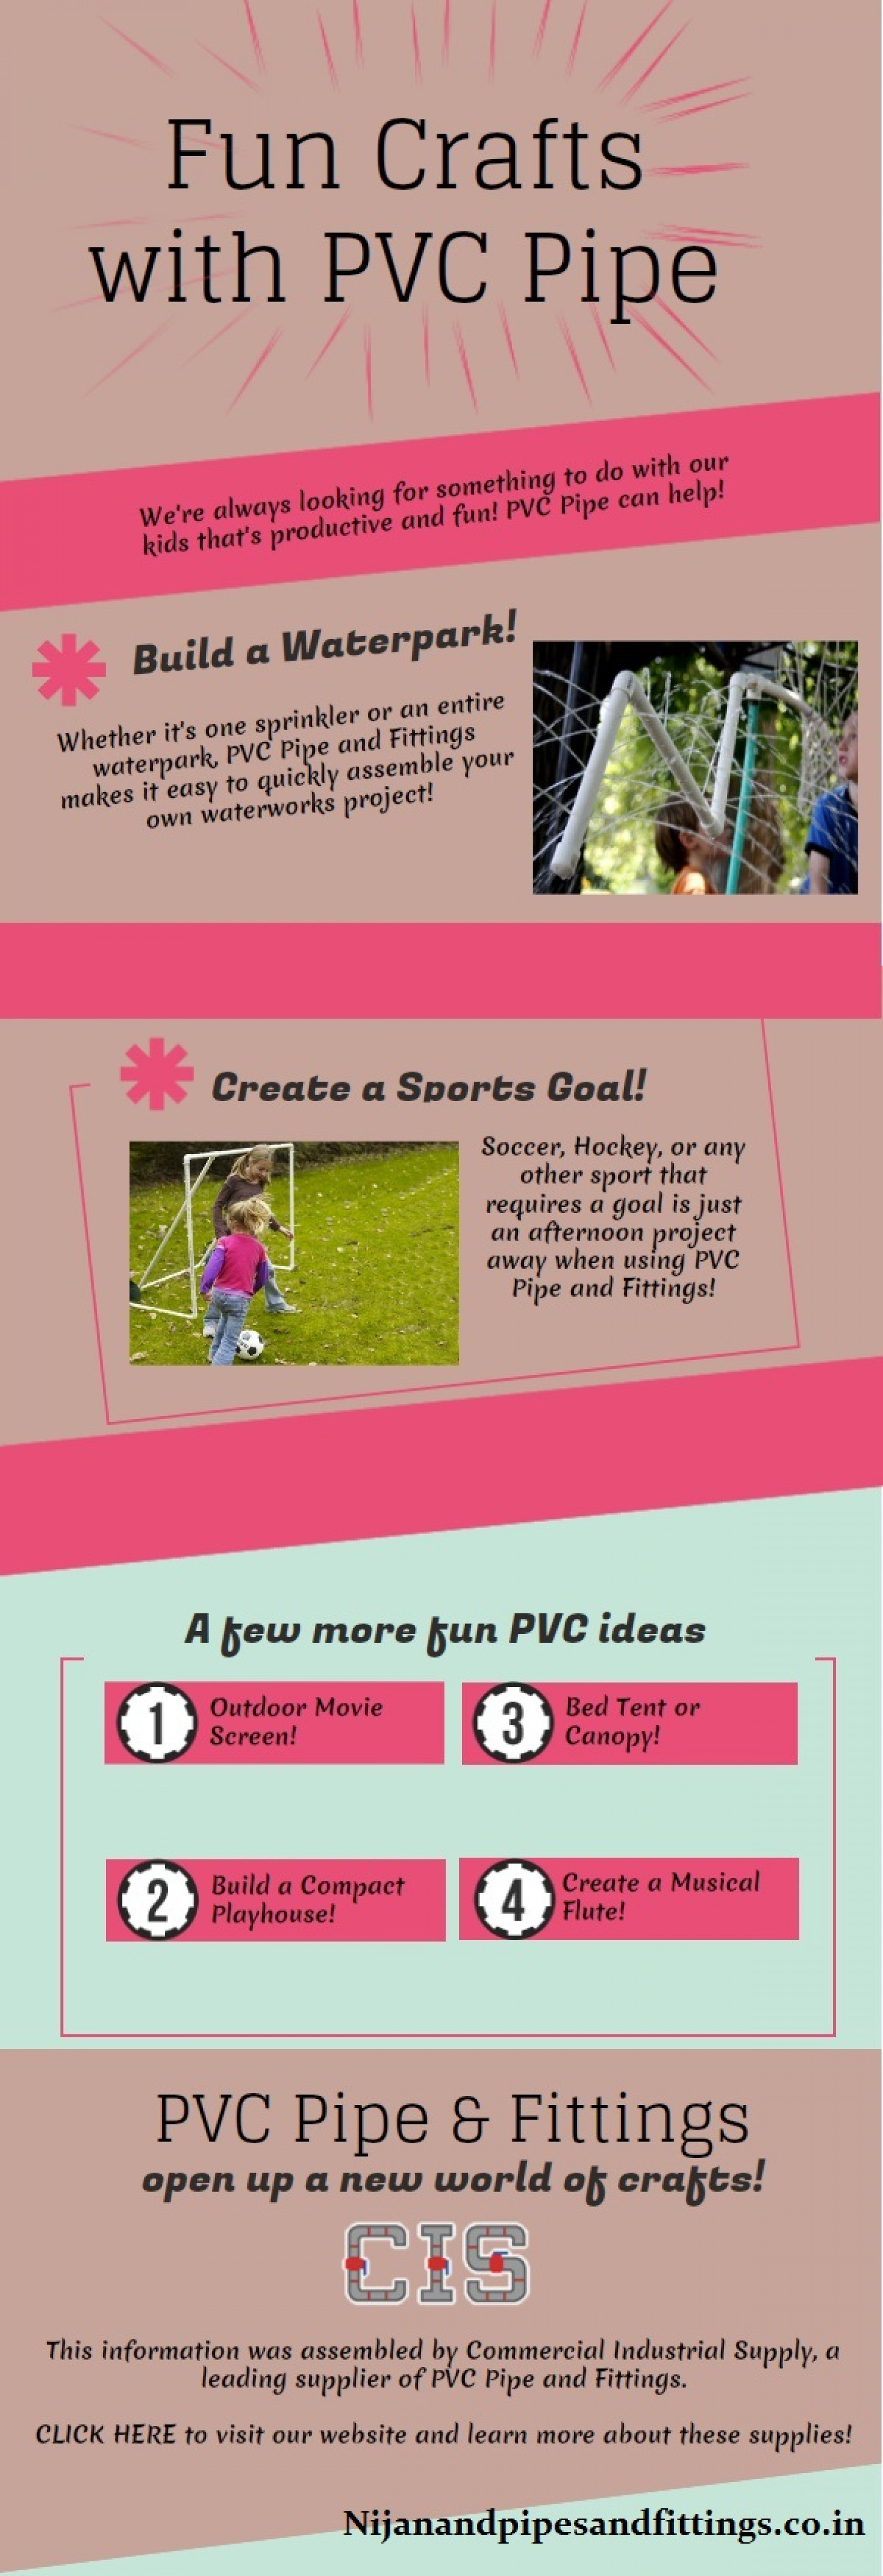 Fun Crafts With PVC Pipe Infographic